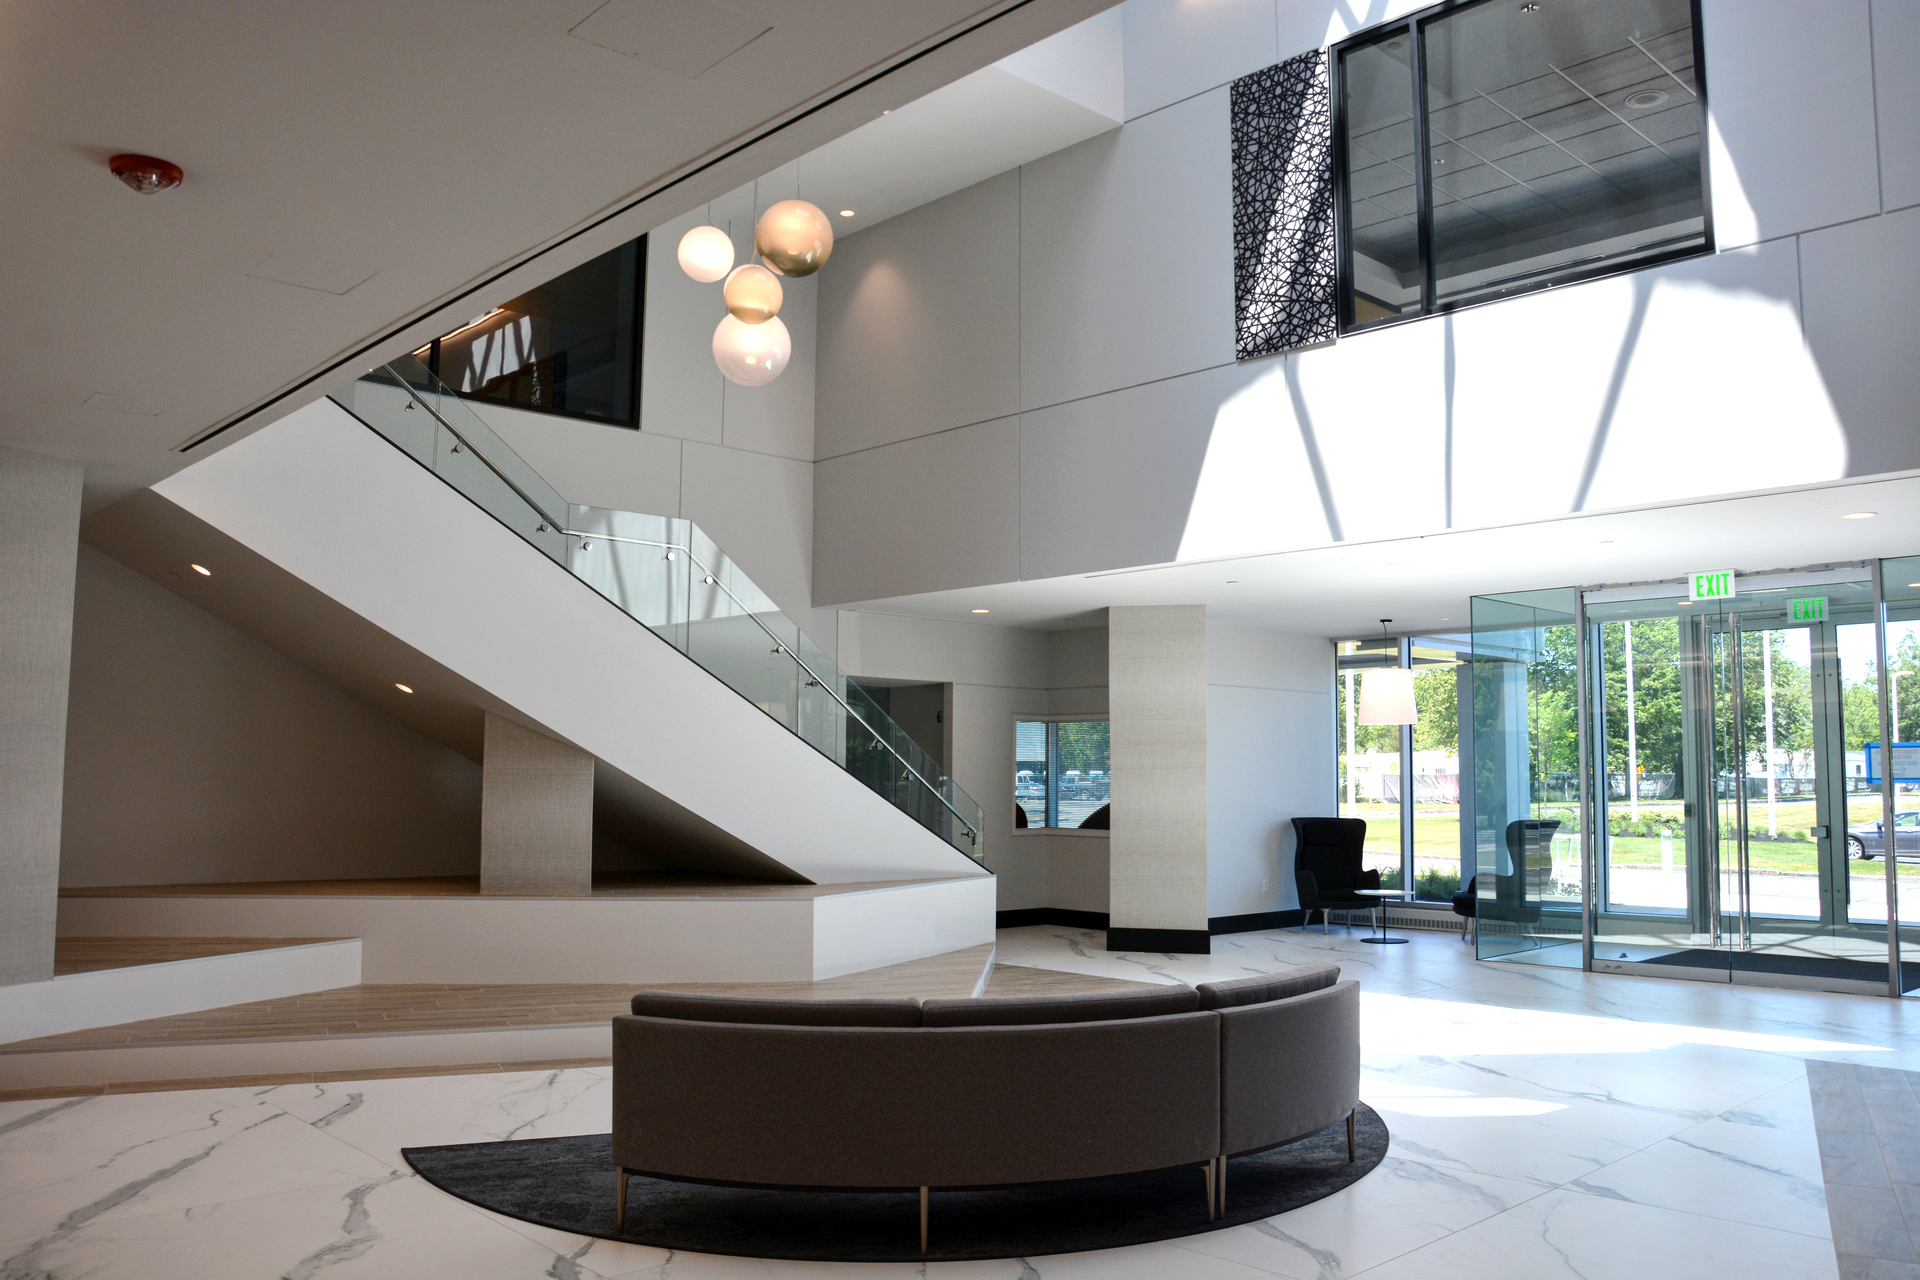 Possessing an instinctive foresight for market trends, 720 University Ave is their latest acquisition of office space for commercial tenants seeking easy access to amenities, public transportation, retail and restaurant offerings that offer quality of life for today's evolving modern lifestyle.